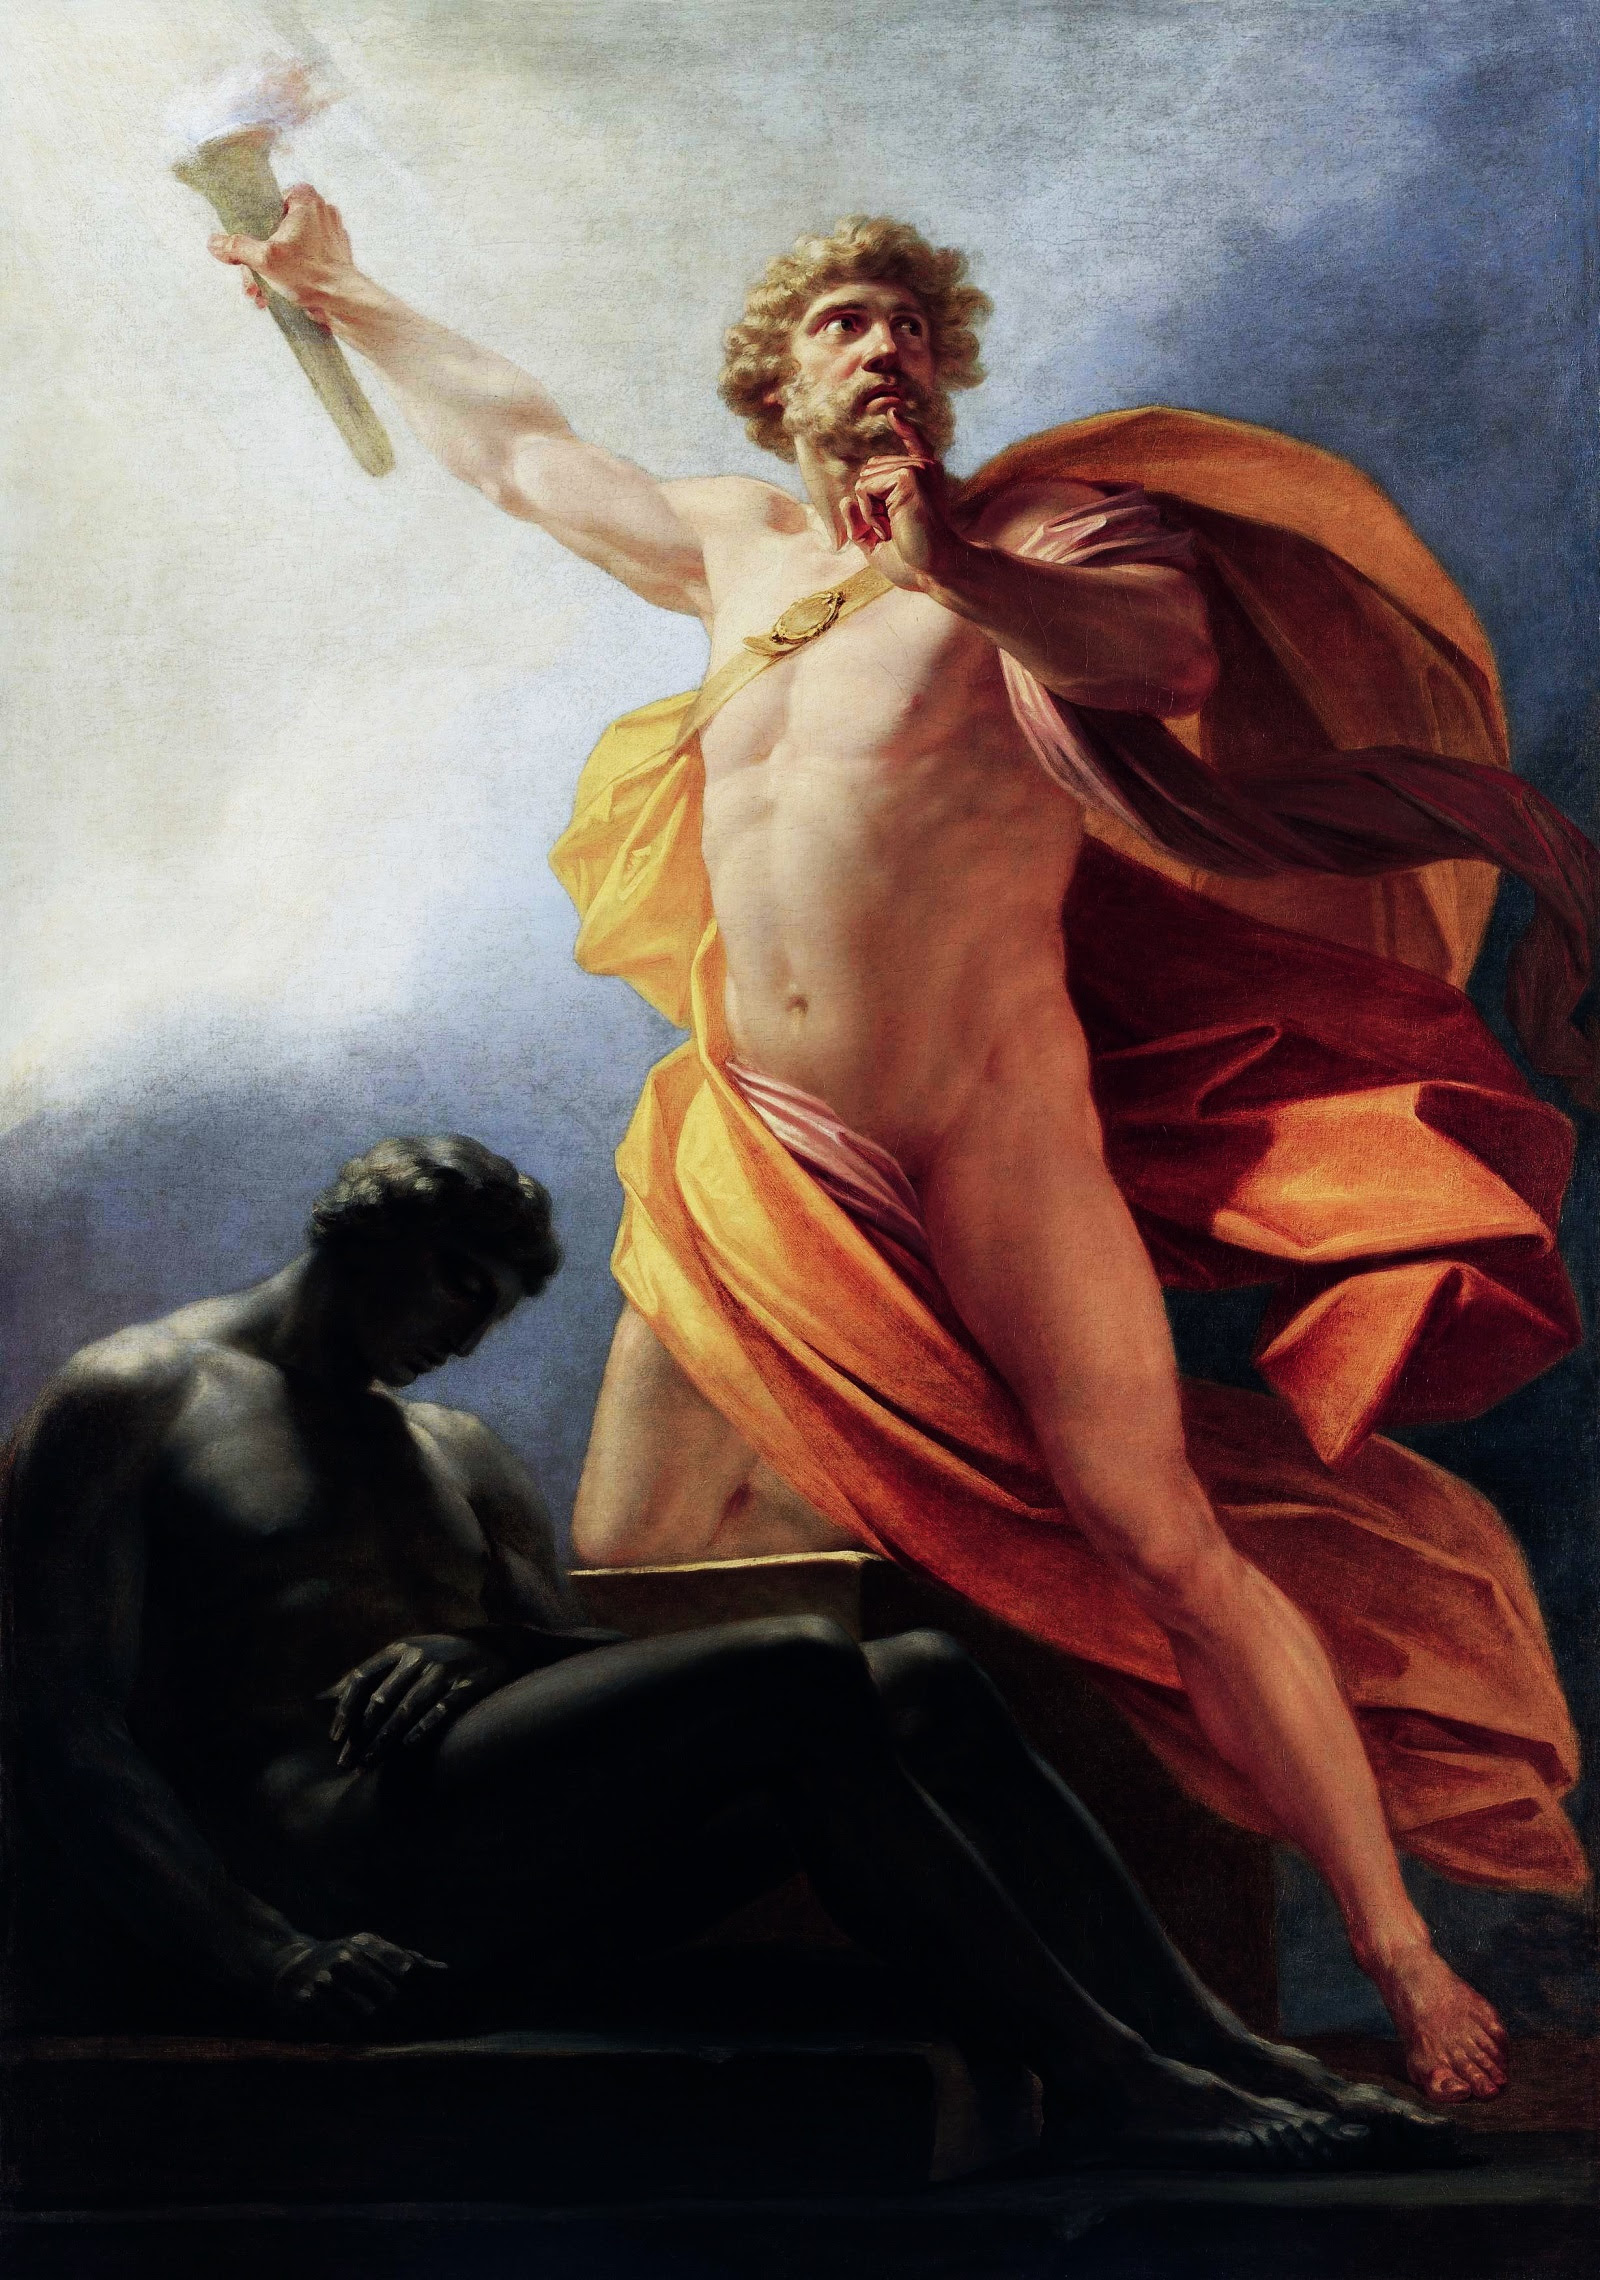 http://upload.wikimedia.org/wikipedia/commons/5/5b/Heinrich_fueger_1817_prometheus_brings_fire_to_mankind.jpg